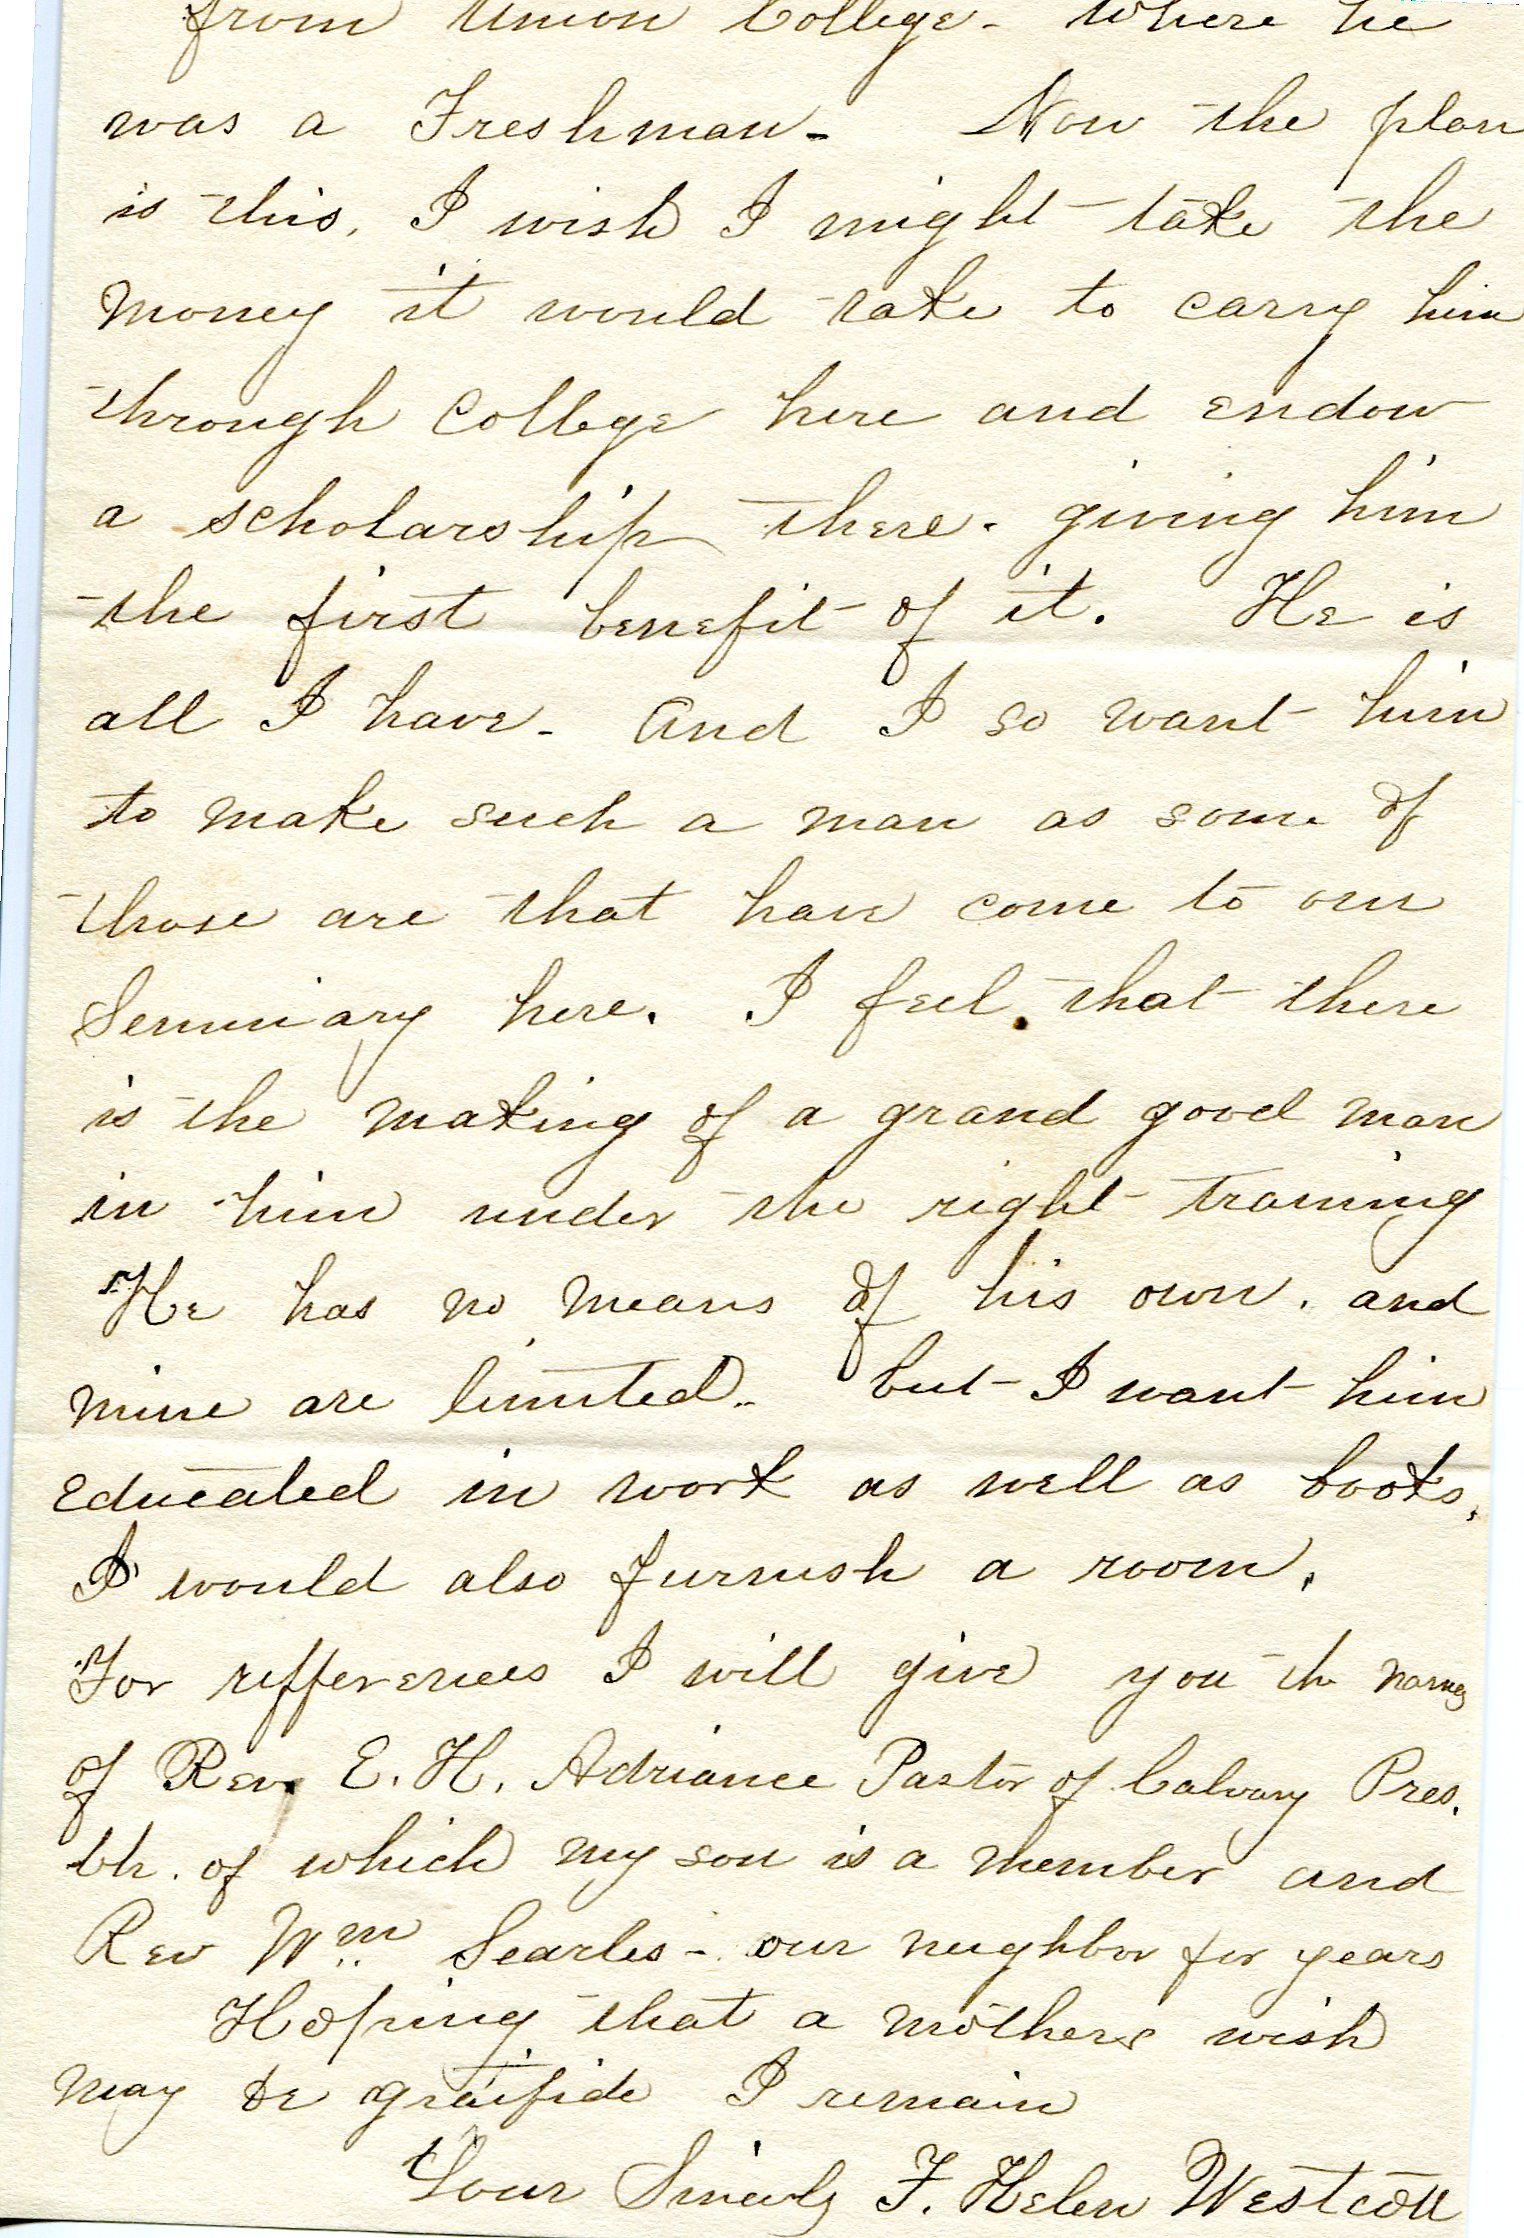 Page two of a letter from Helen Westcott to the Trustees of Park College regarding her husband Edwin R. Westcott's death and her wish to put aside money for her son to attend Park. December 31, 1894